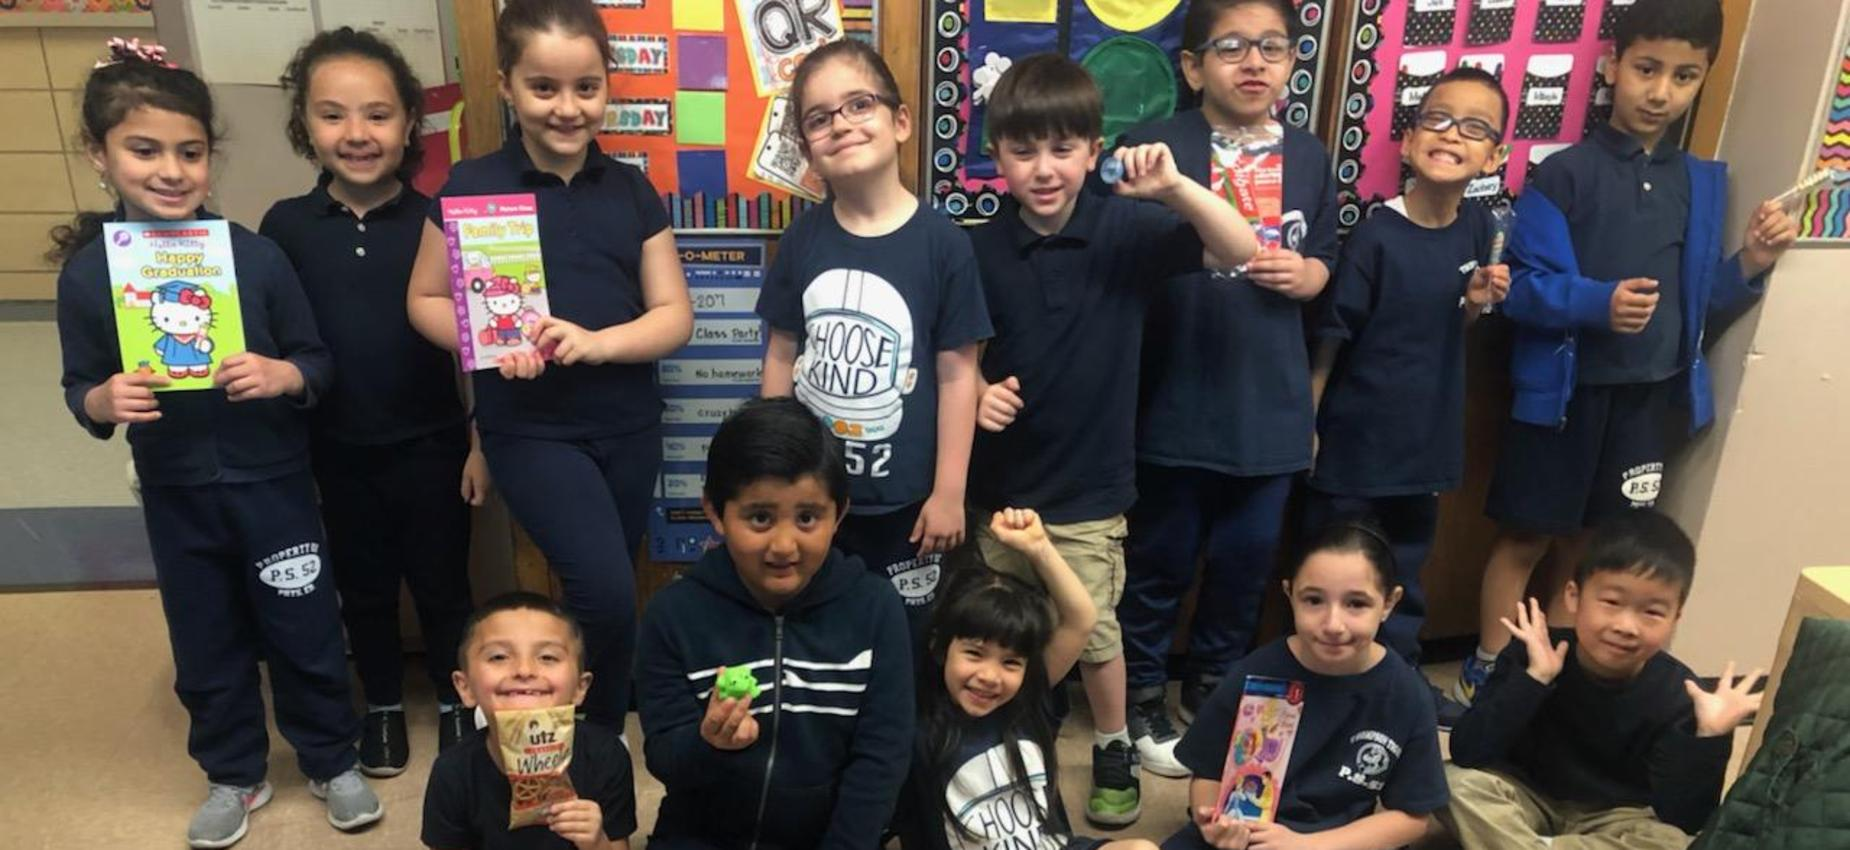 second graders holding up books